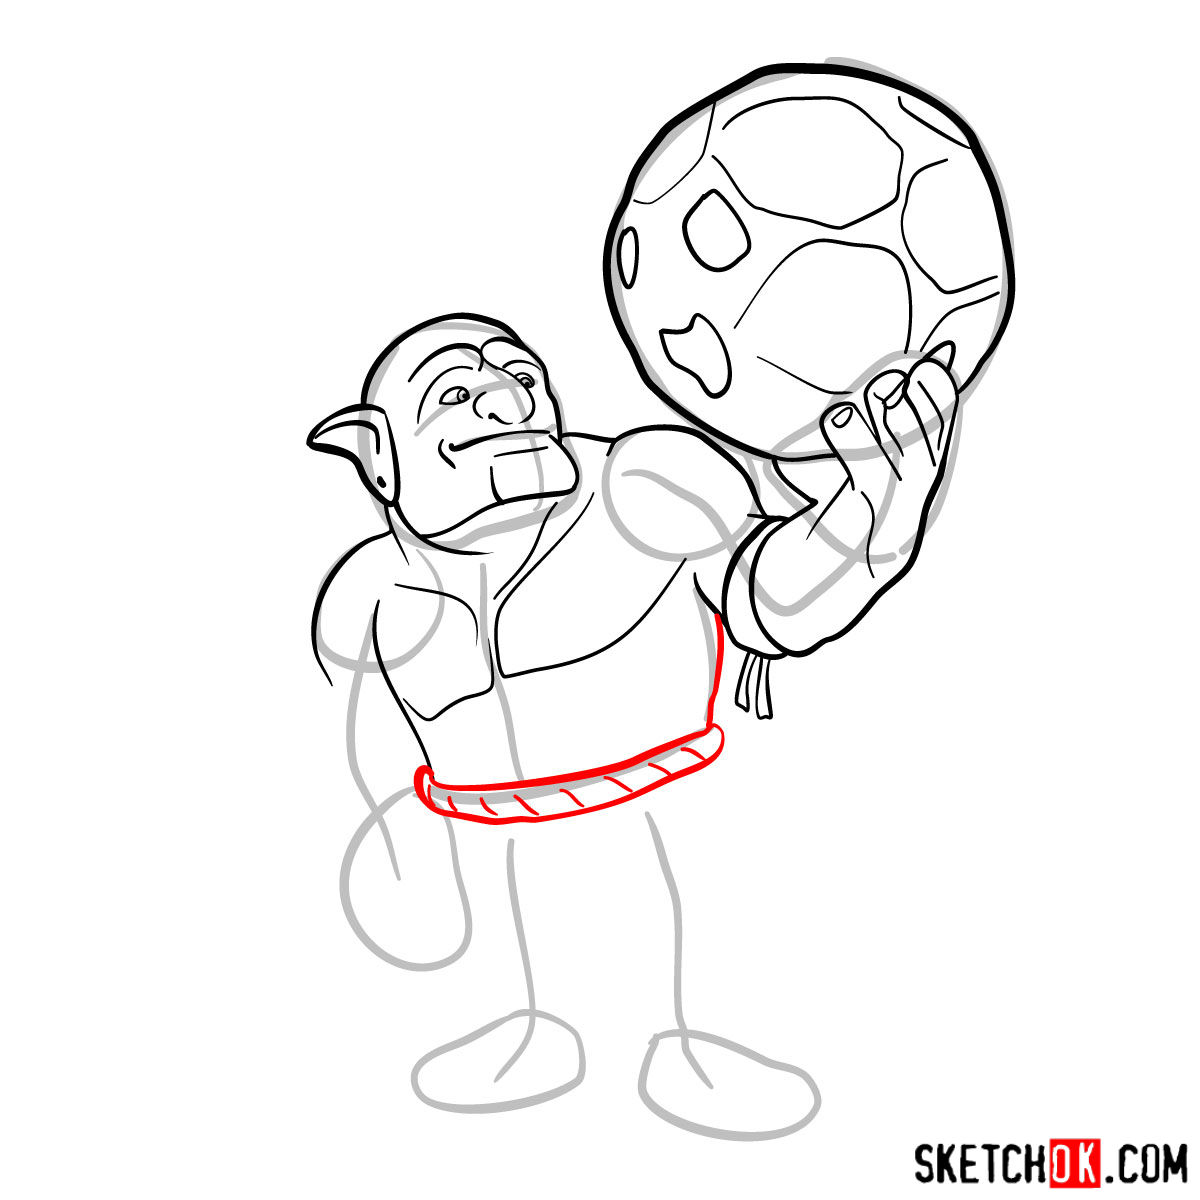 How to draw Bowler from Clash of Clans - step 06